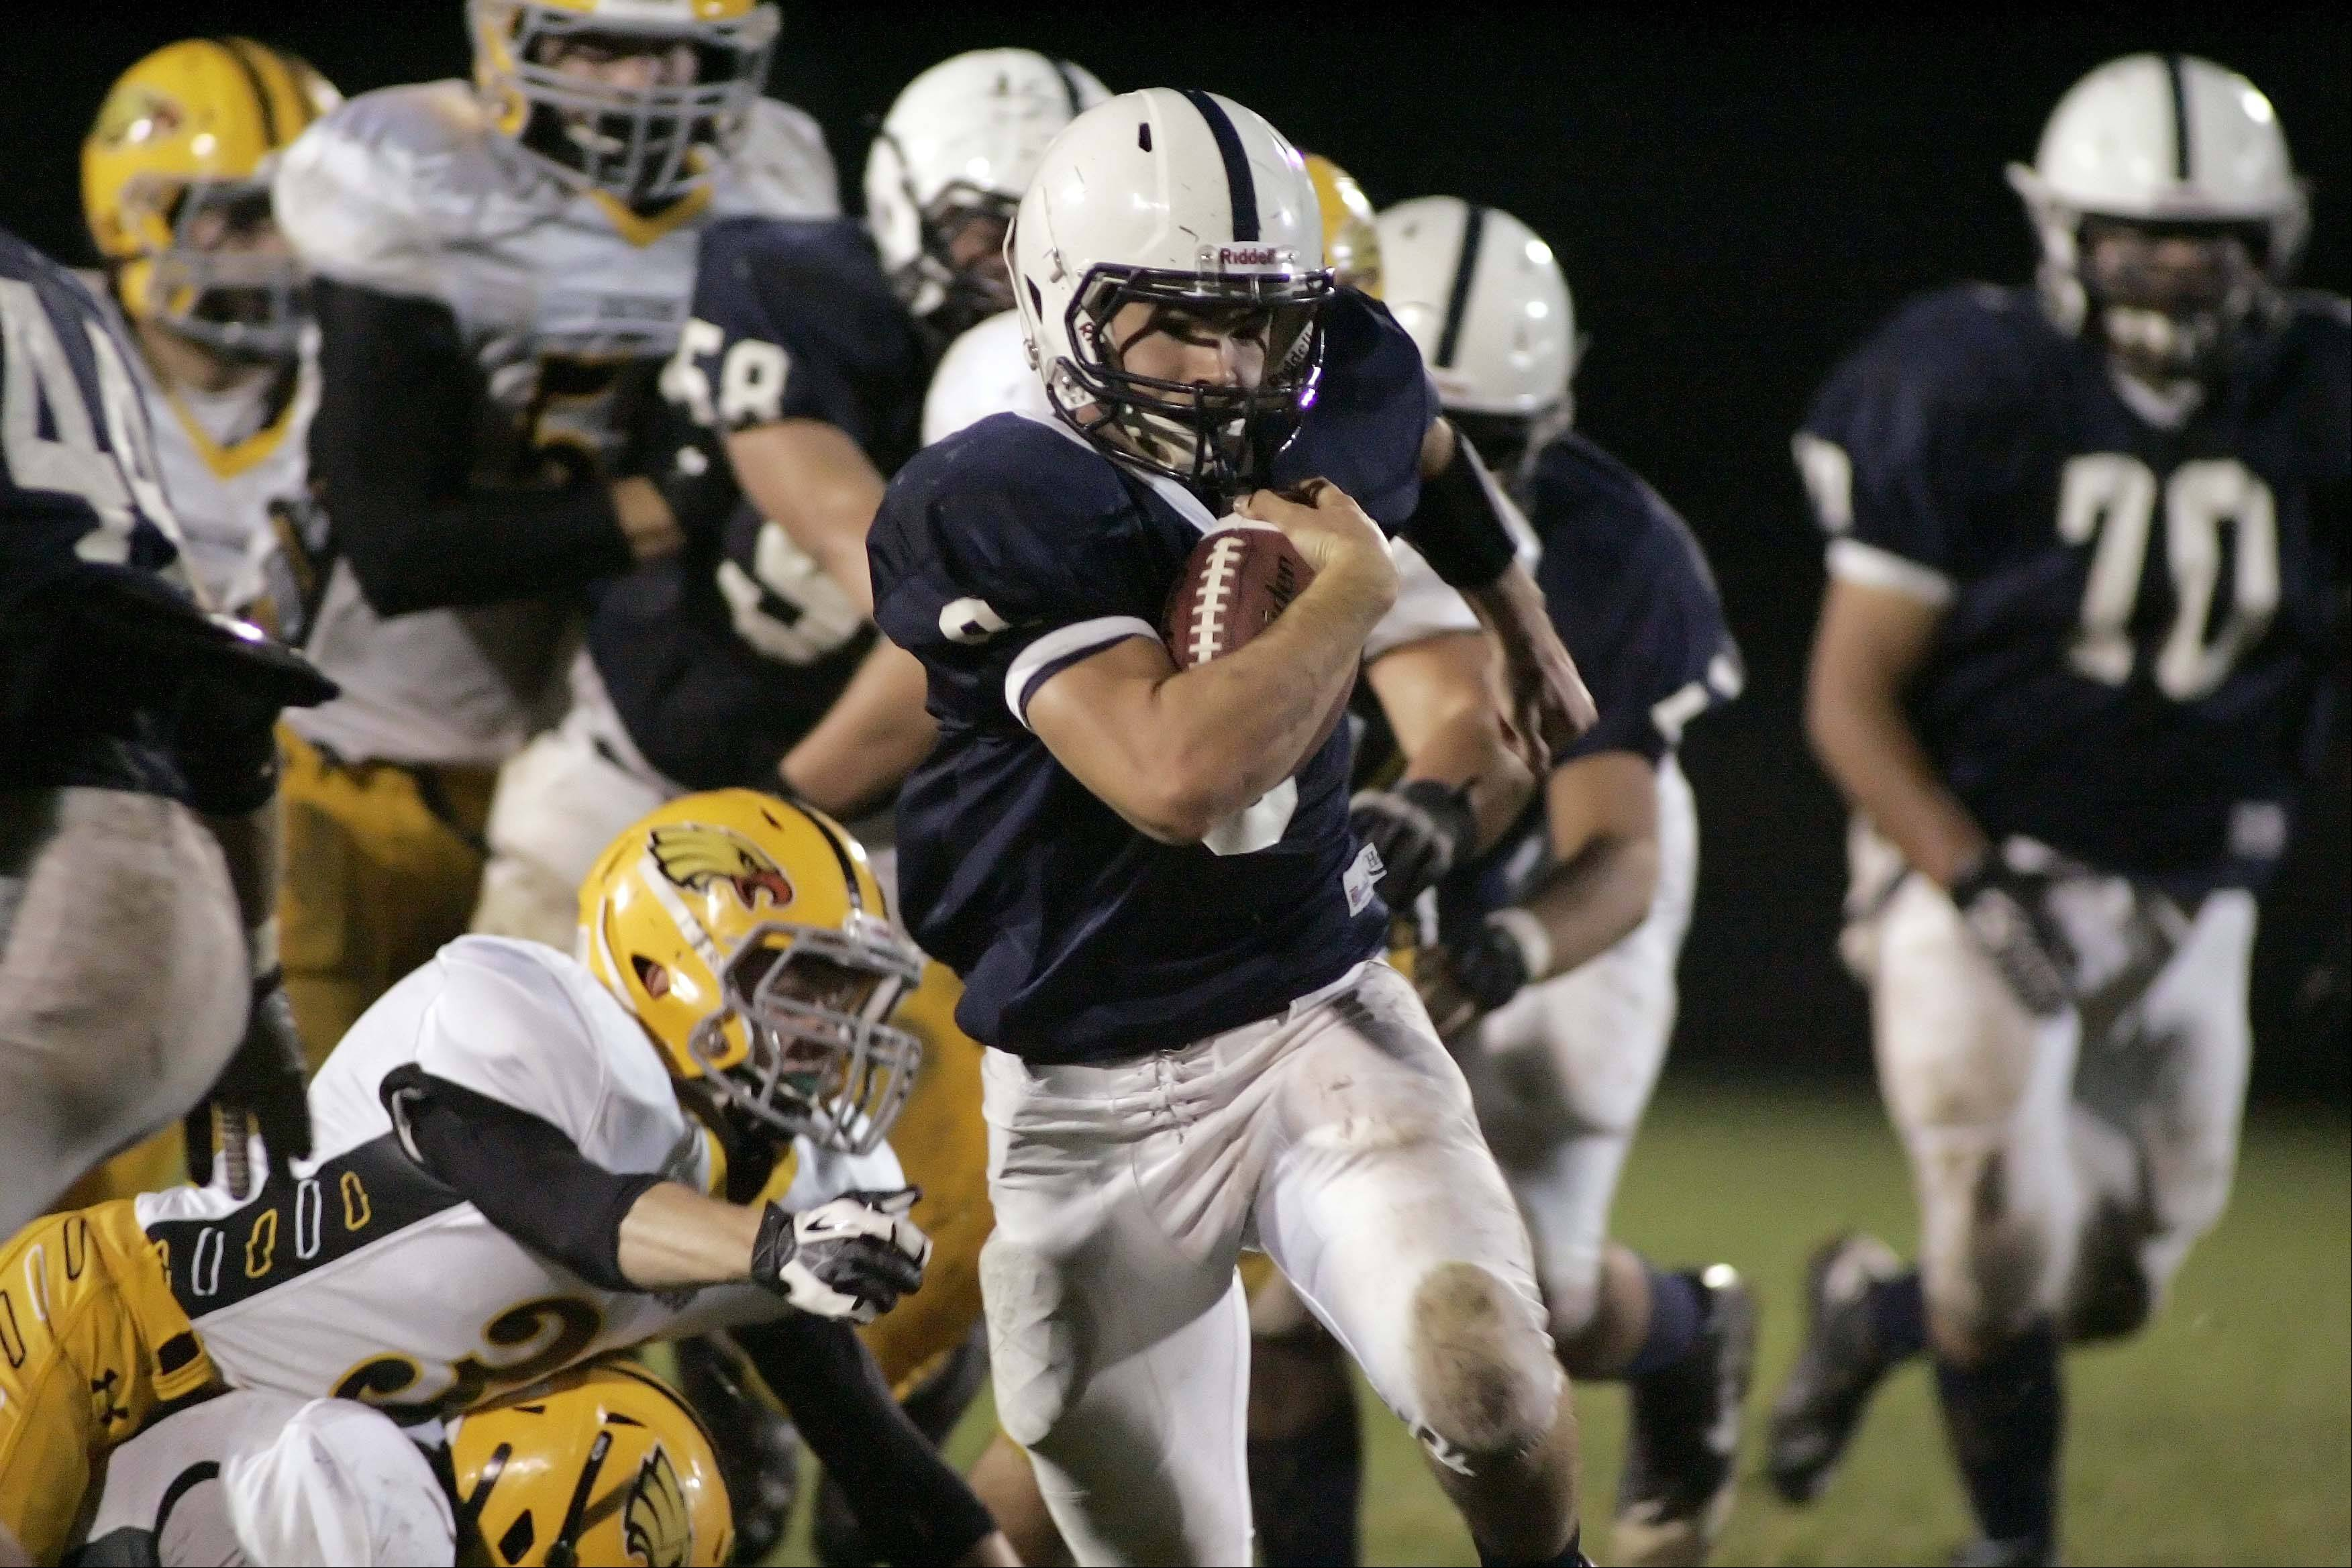 Cary-Grove's Quinn Baker (9) goes in for a touchdown during the second quarter against Jacobs Friday night in Cary.